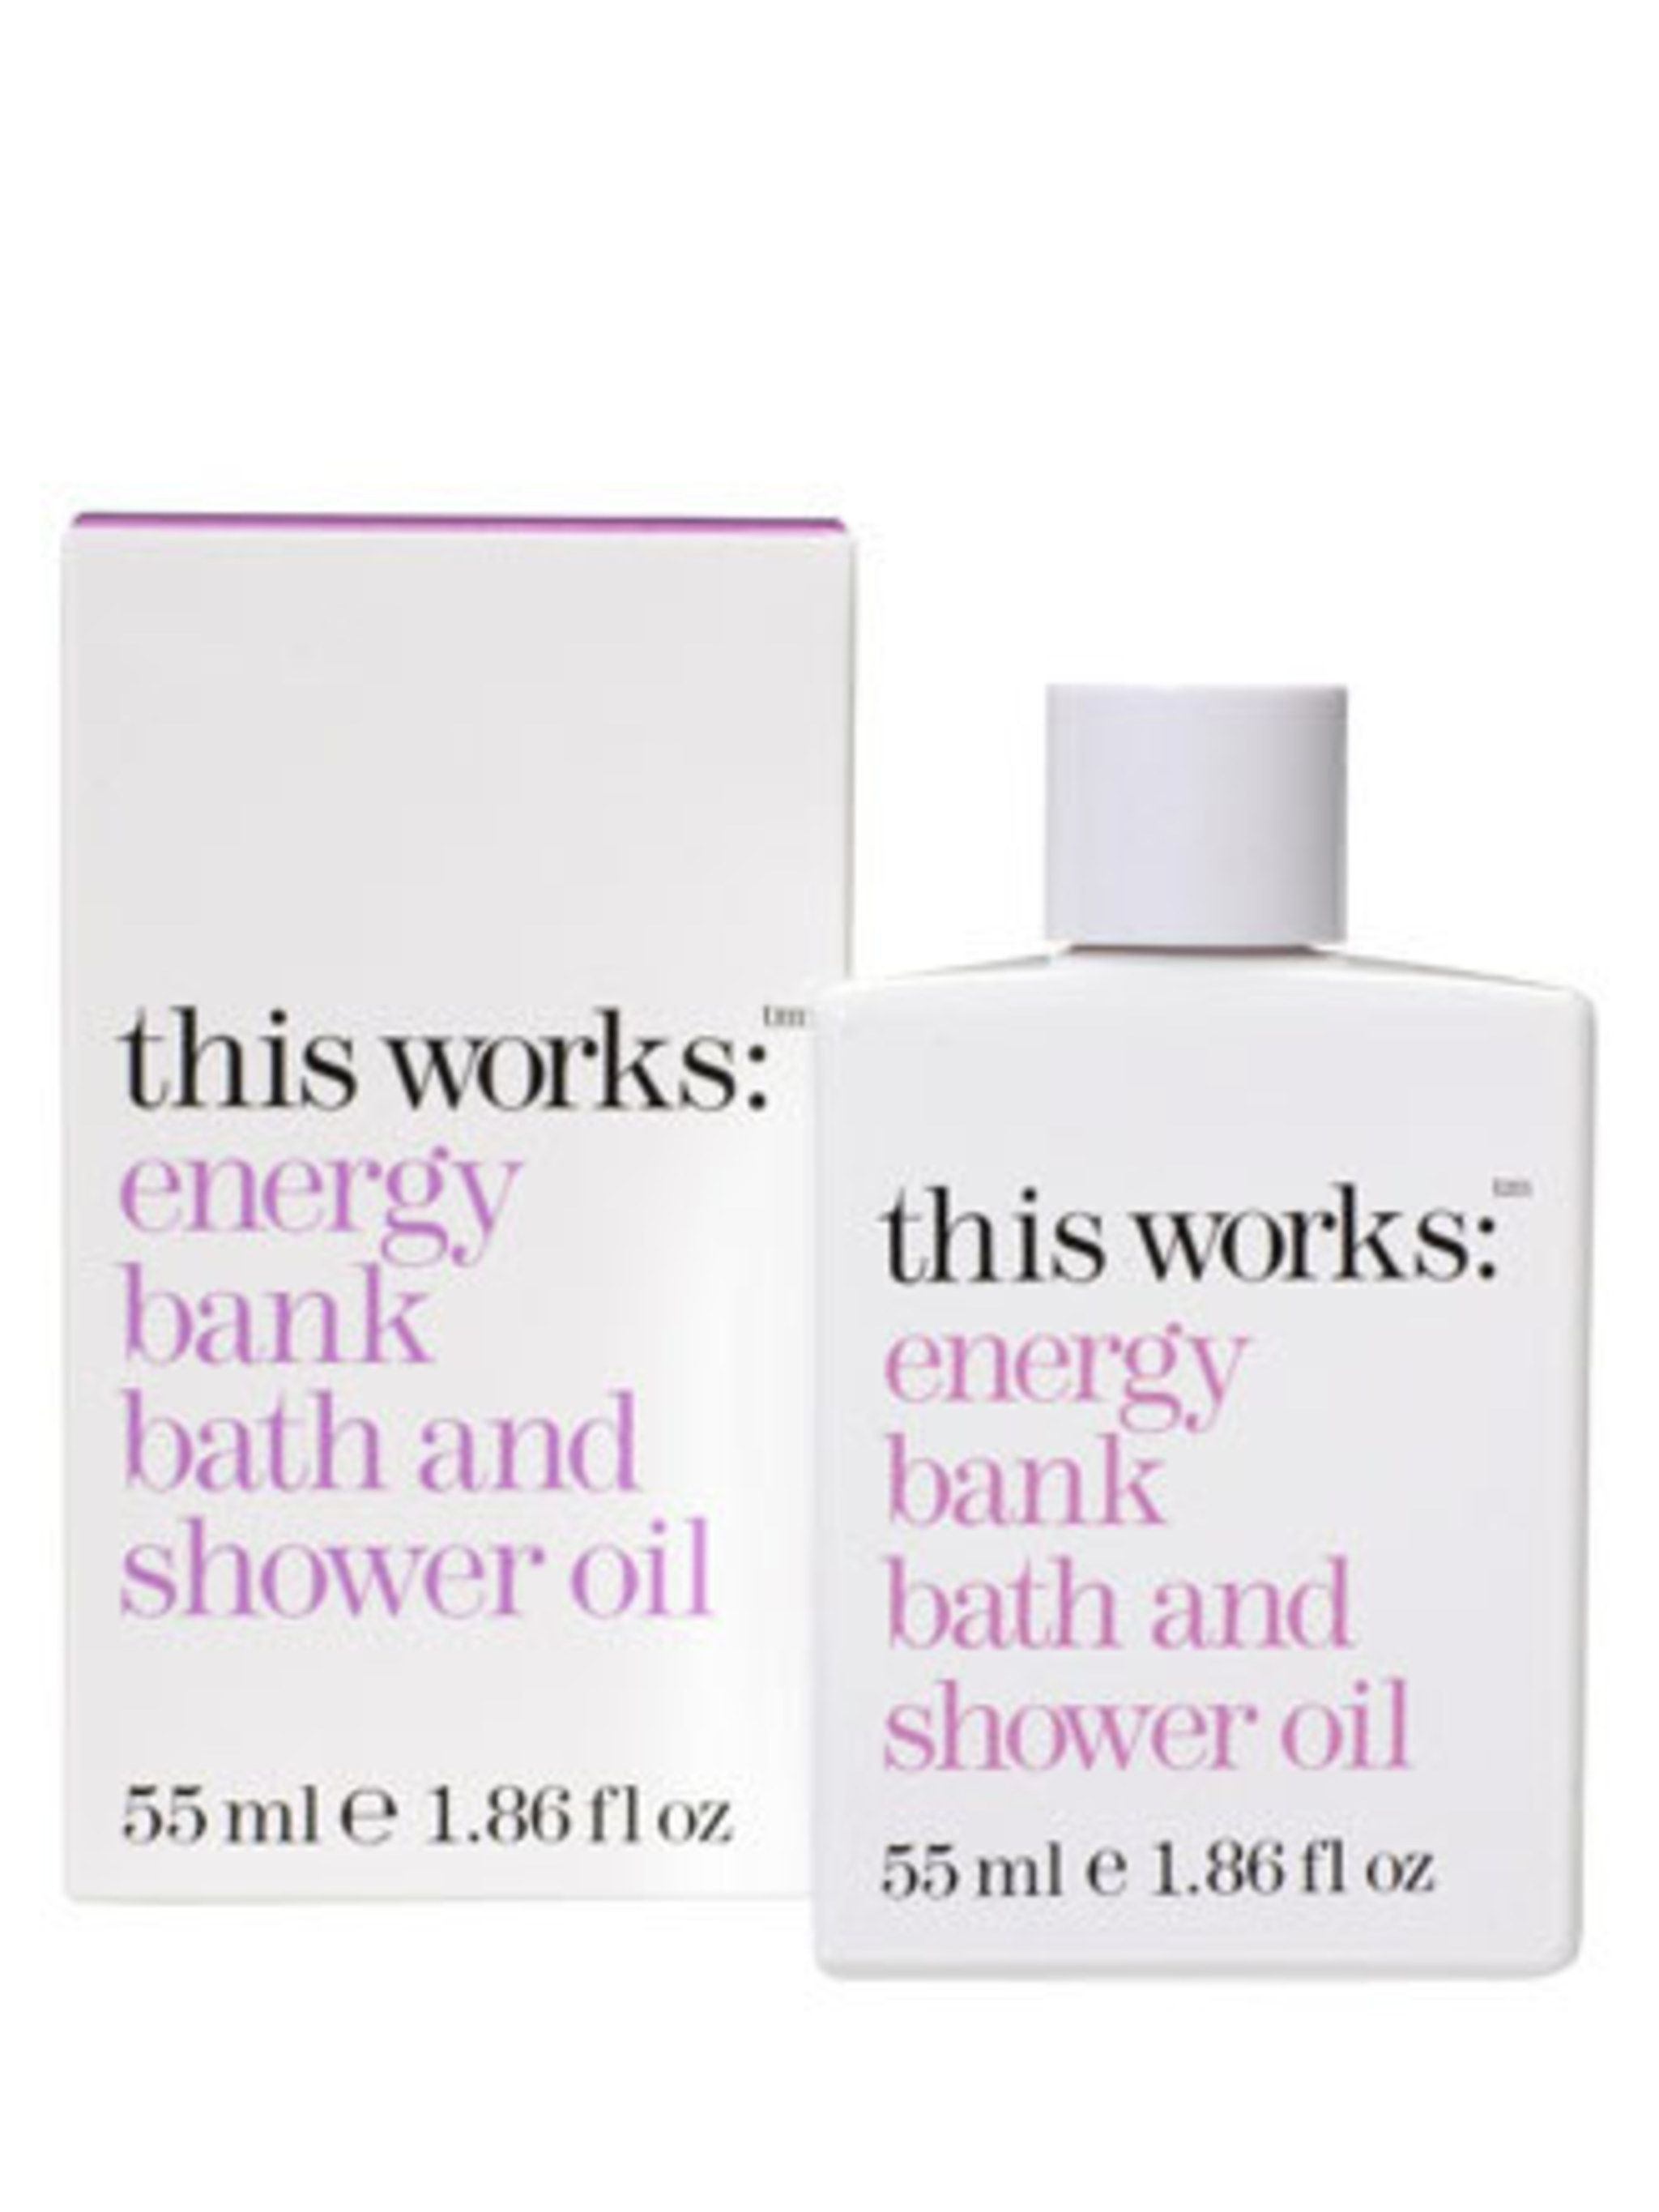 <p>If you're caught in a rain shower, have had a bad day at work or just feel a bit down in the dumps, run a bath and pour a few drops of This Works Energy Bank bath oil into the water. Containing a high concentration of specially selected essential oils